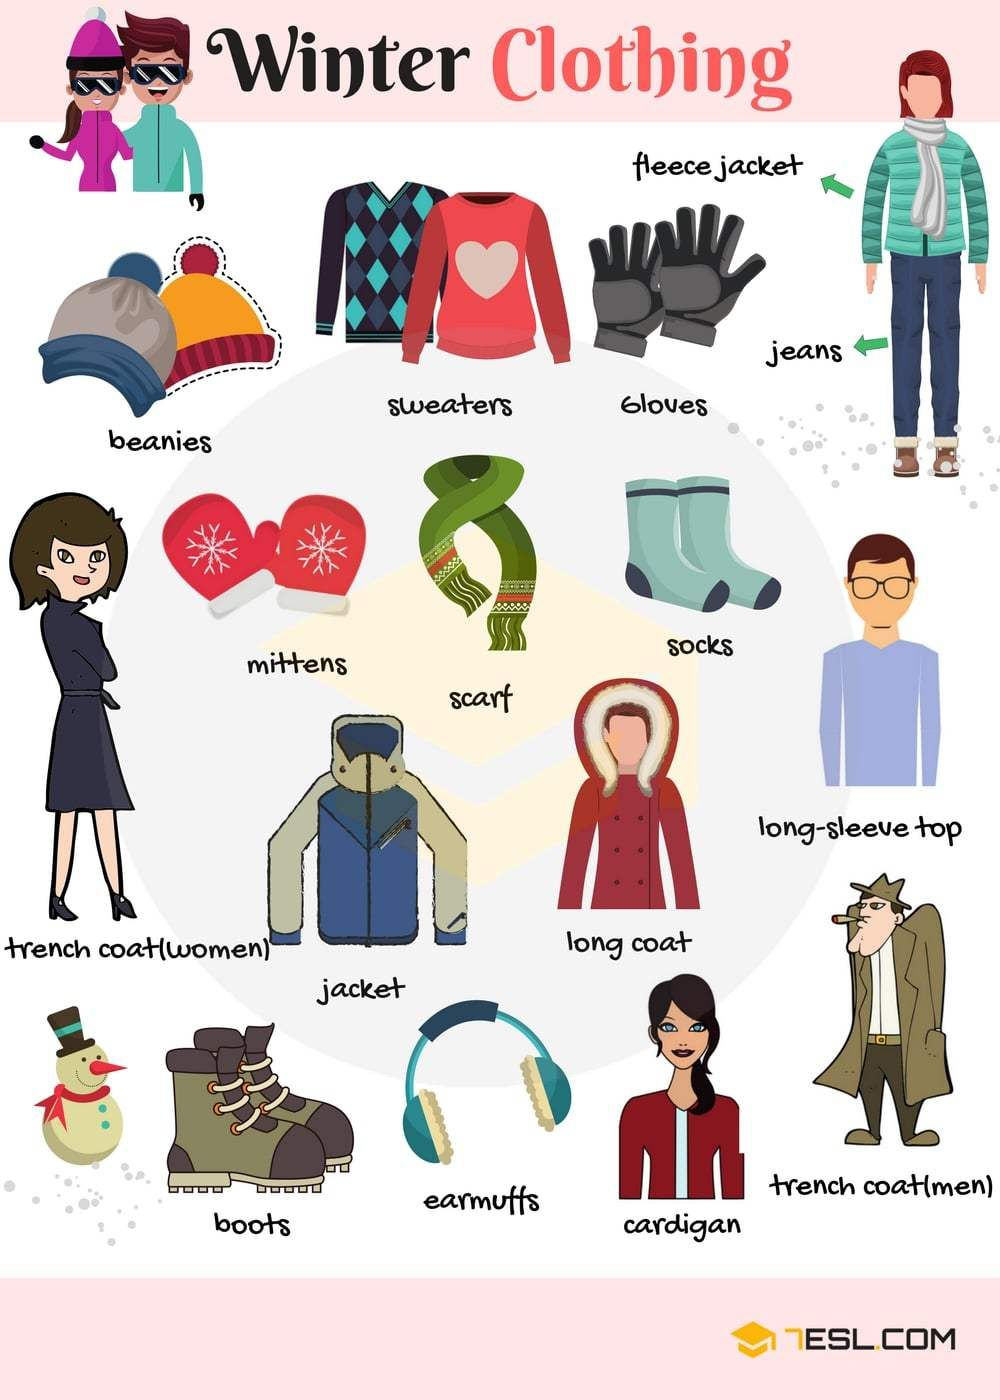 Learn Winter Clothing Vocabulary through Pictures.